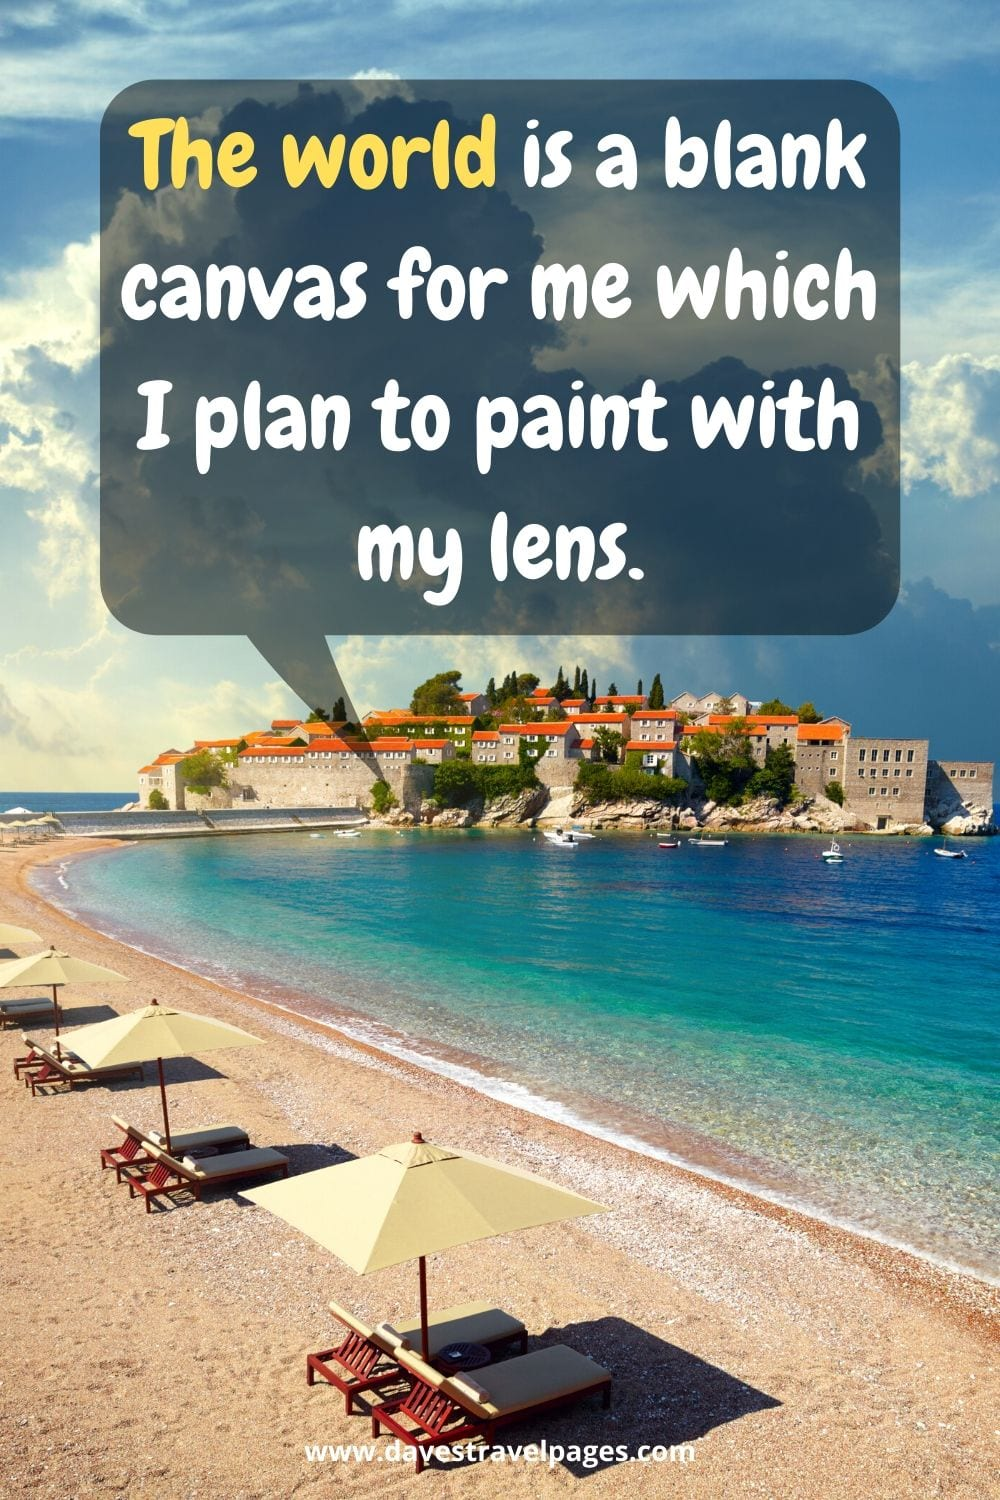 The world is a blank canvas for me which I plan to paint with my lens.